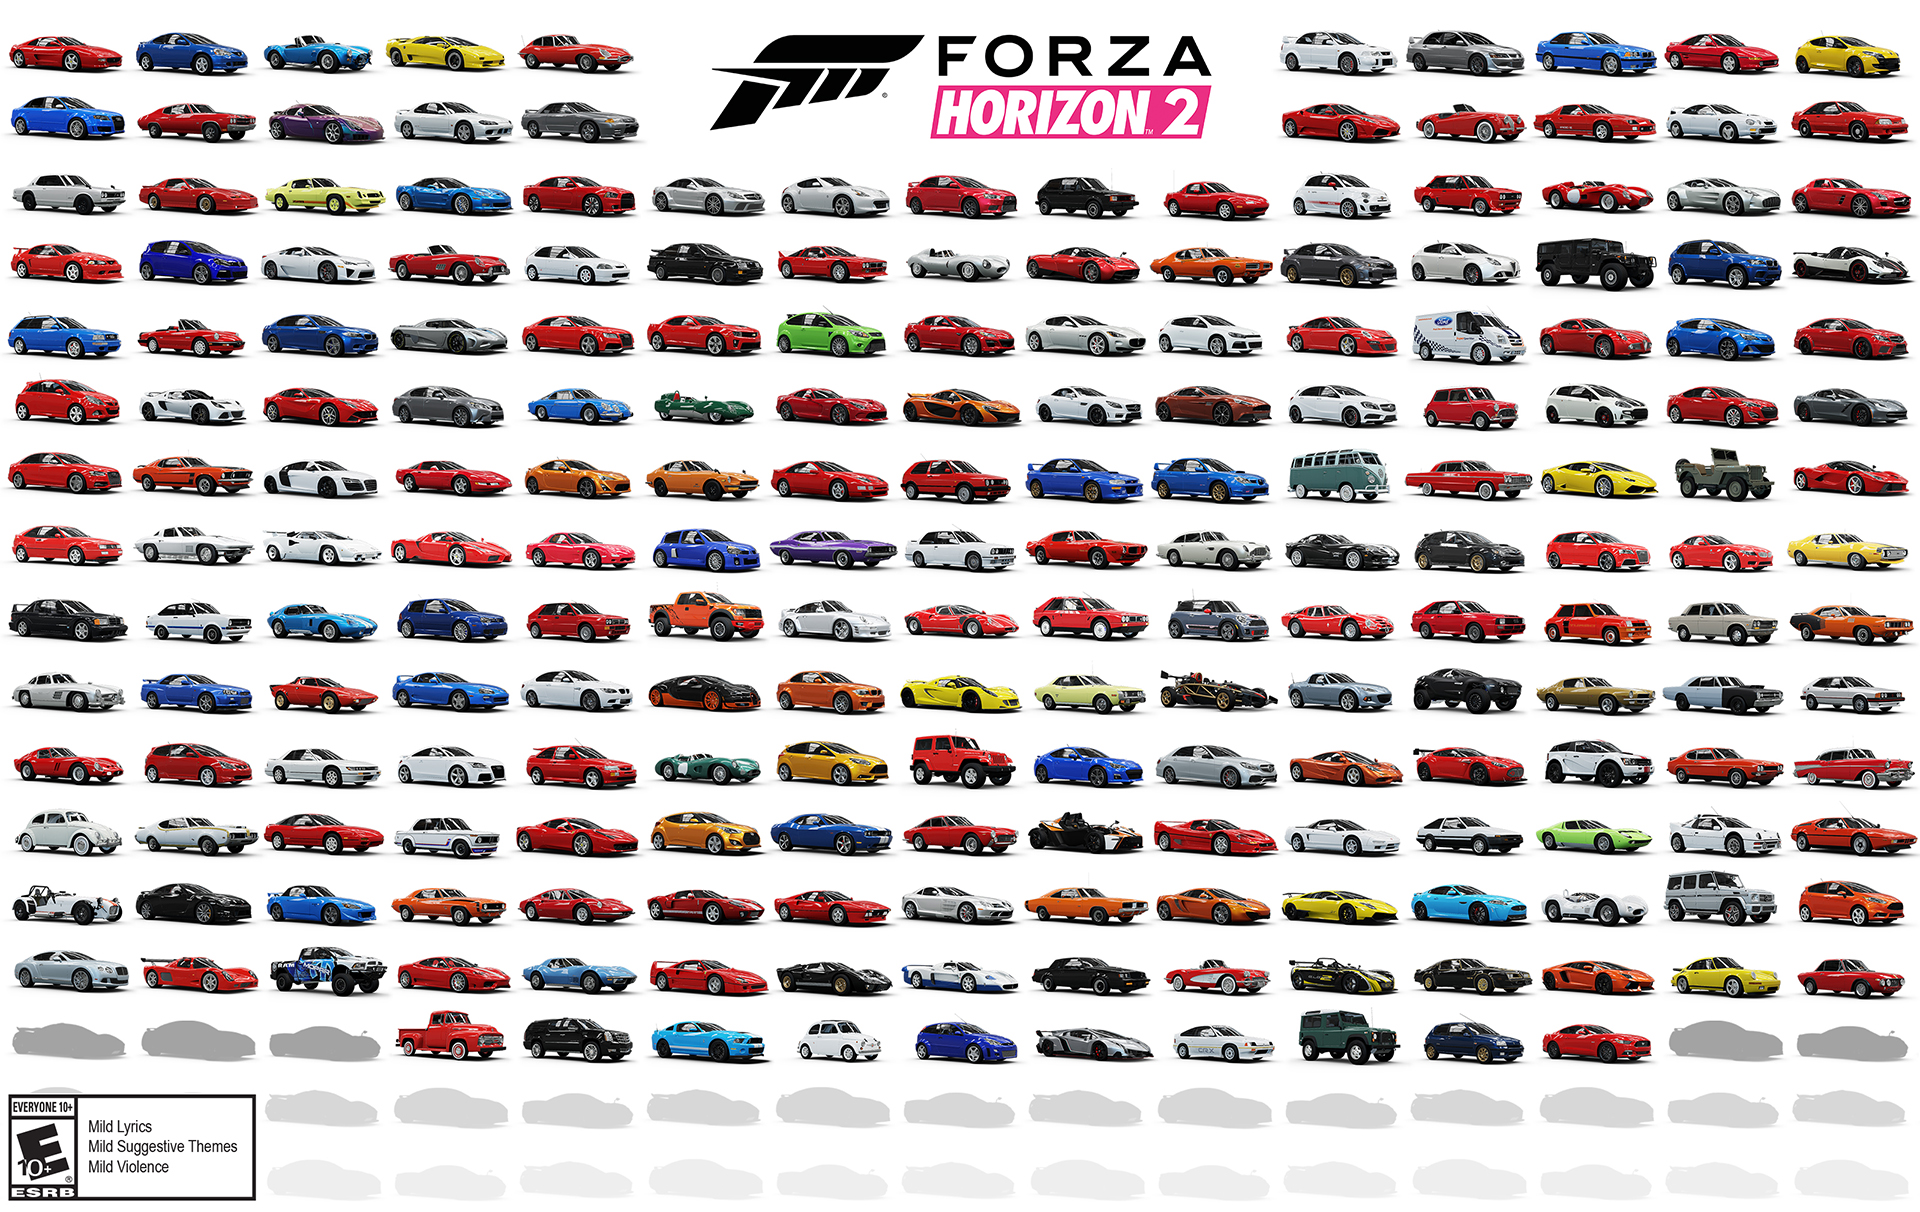 Forza Horizon 2 Cars List Revealed 1